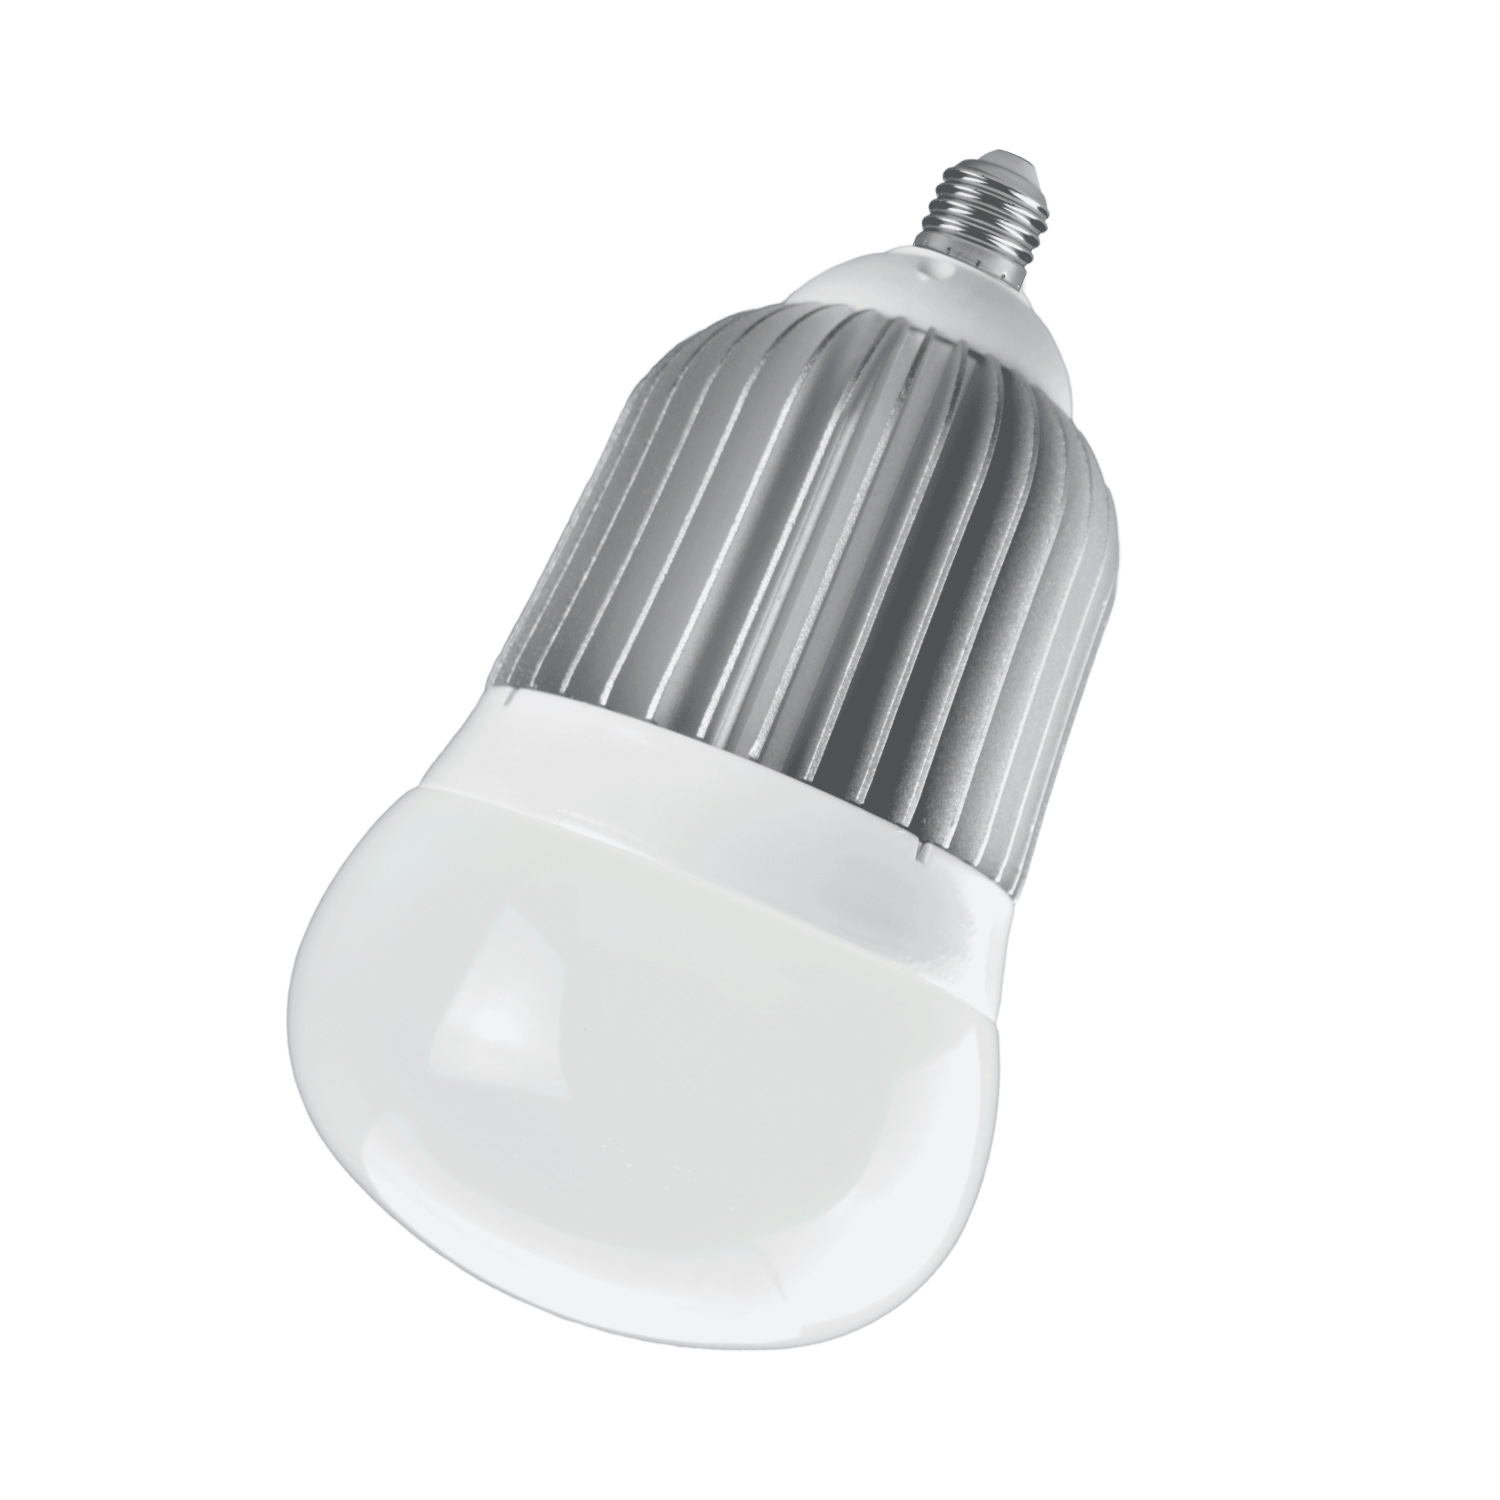 Stonepoint LED Lighting BB-50 LED Big Bulb (4275 Lumens)